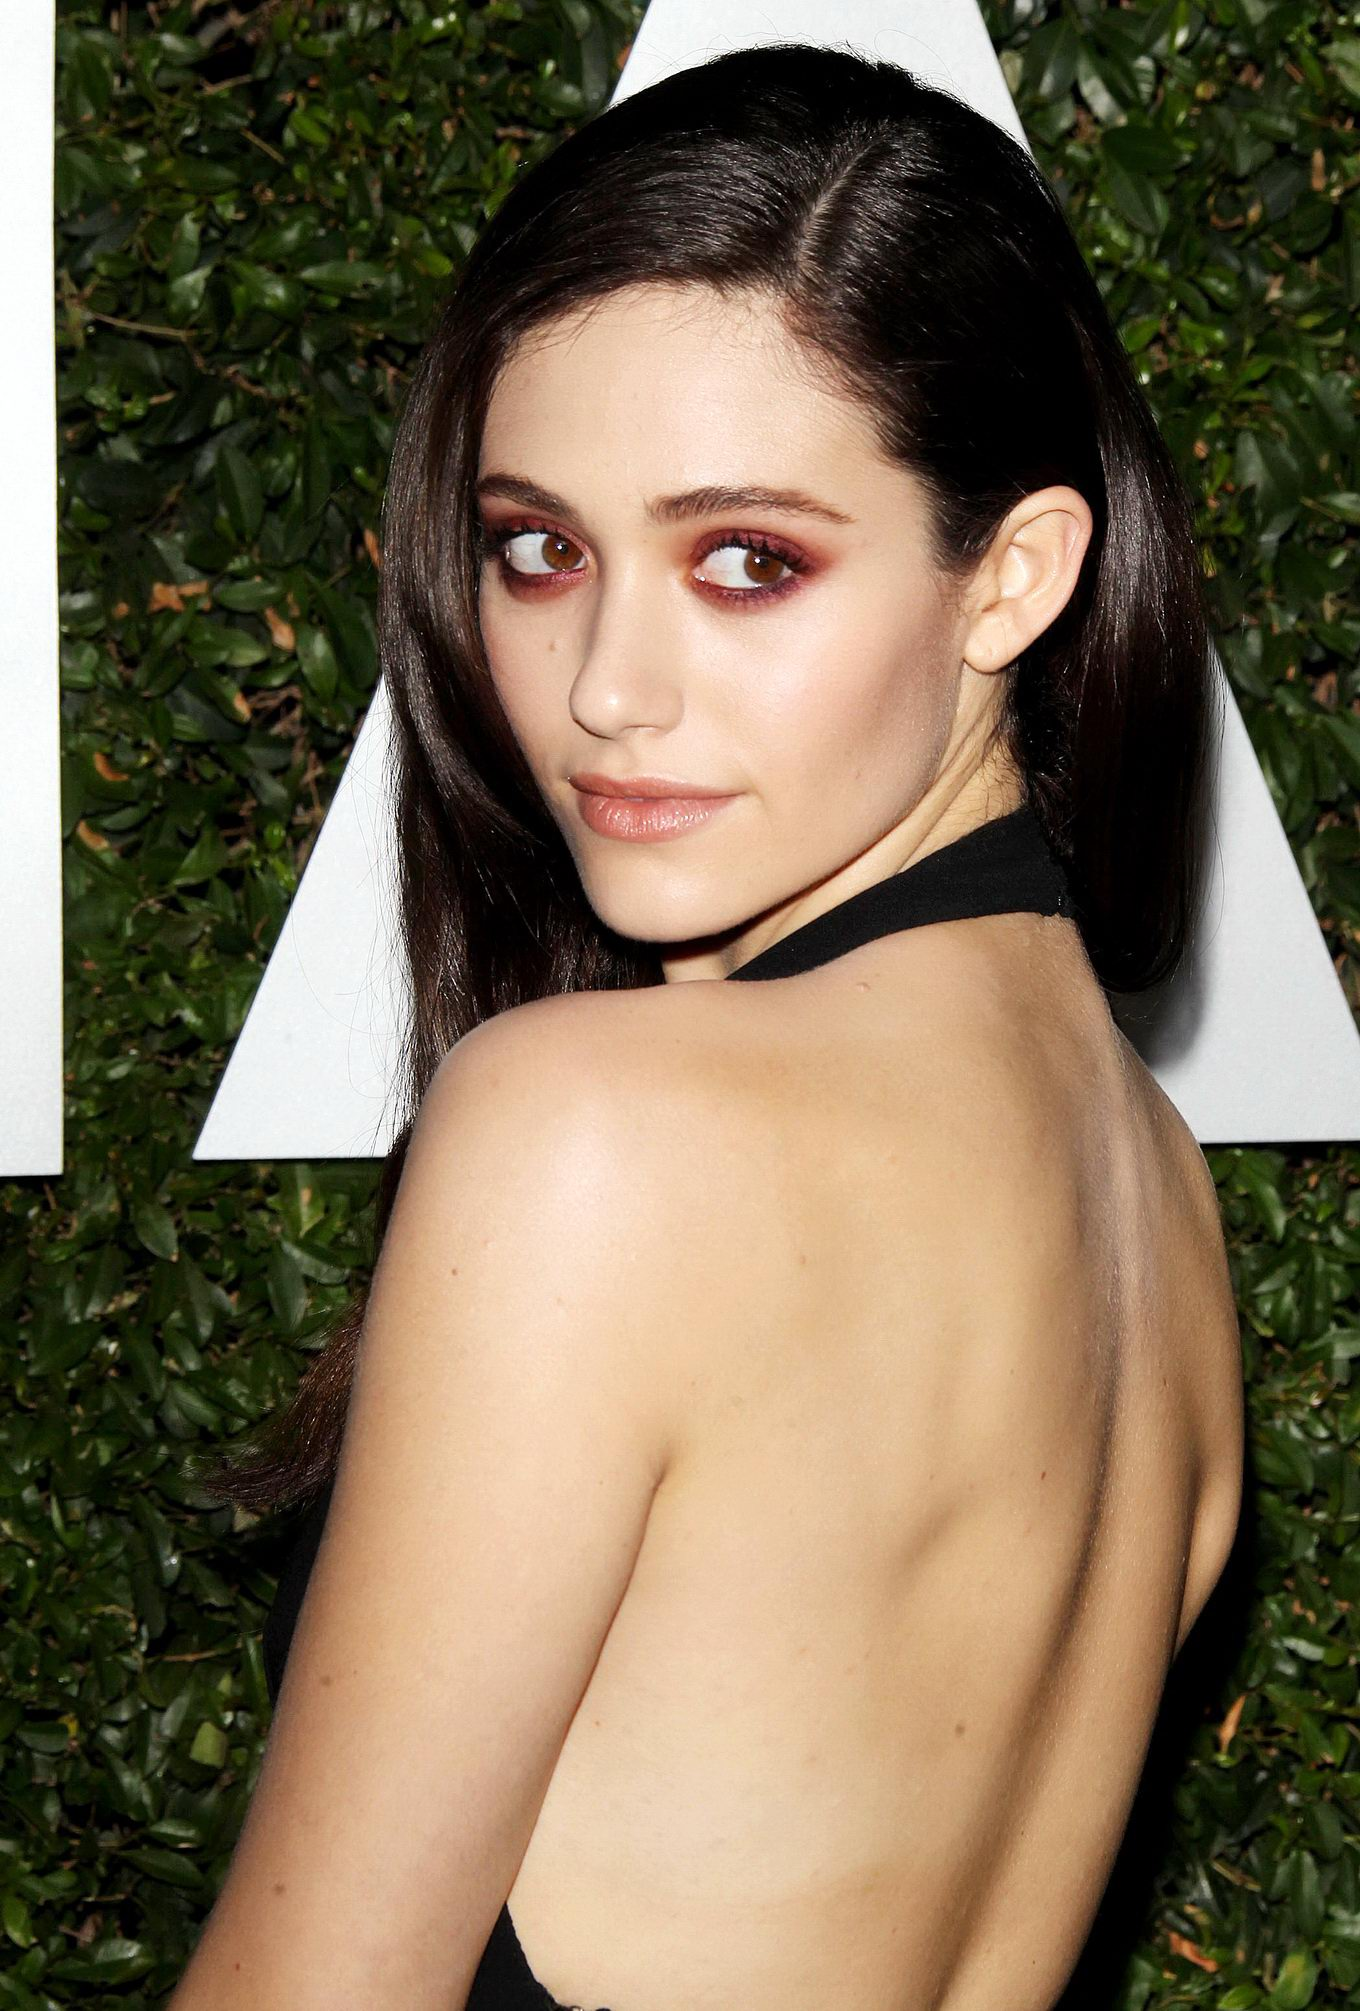 Emmy Rossum and Amy Smart topless HD  Porn Video 131  Tube8